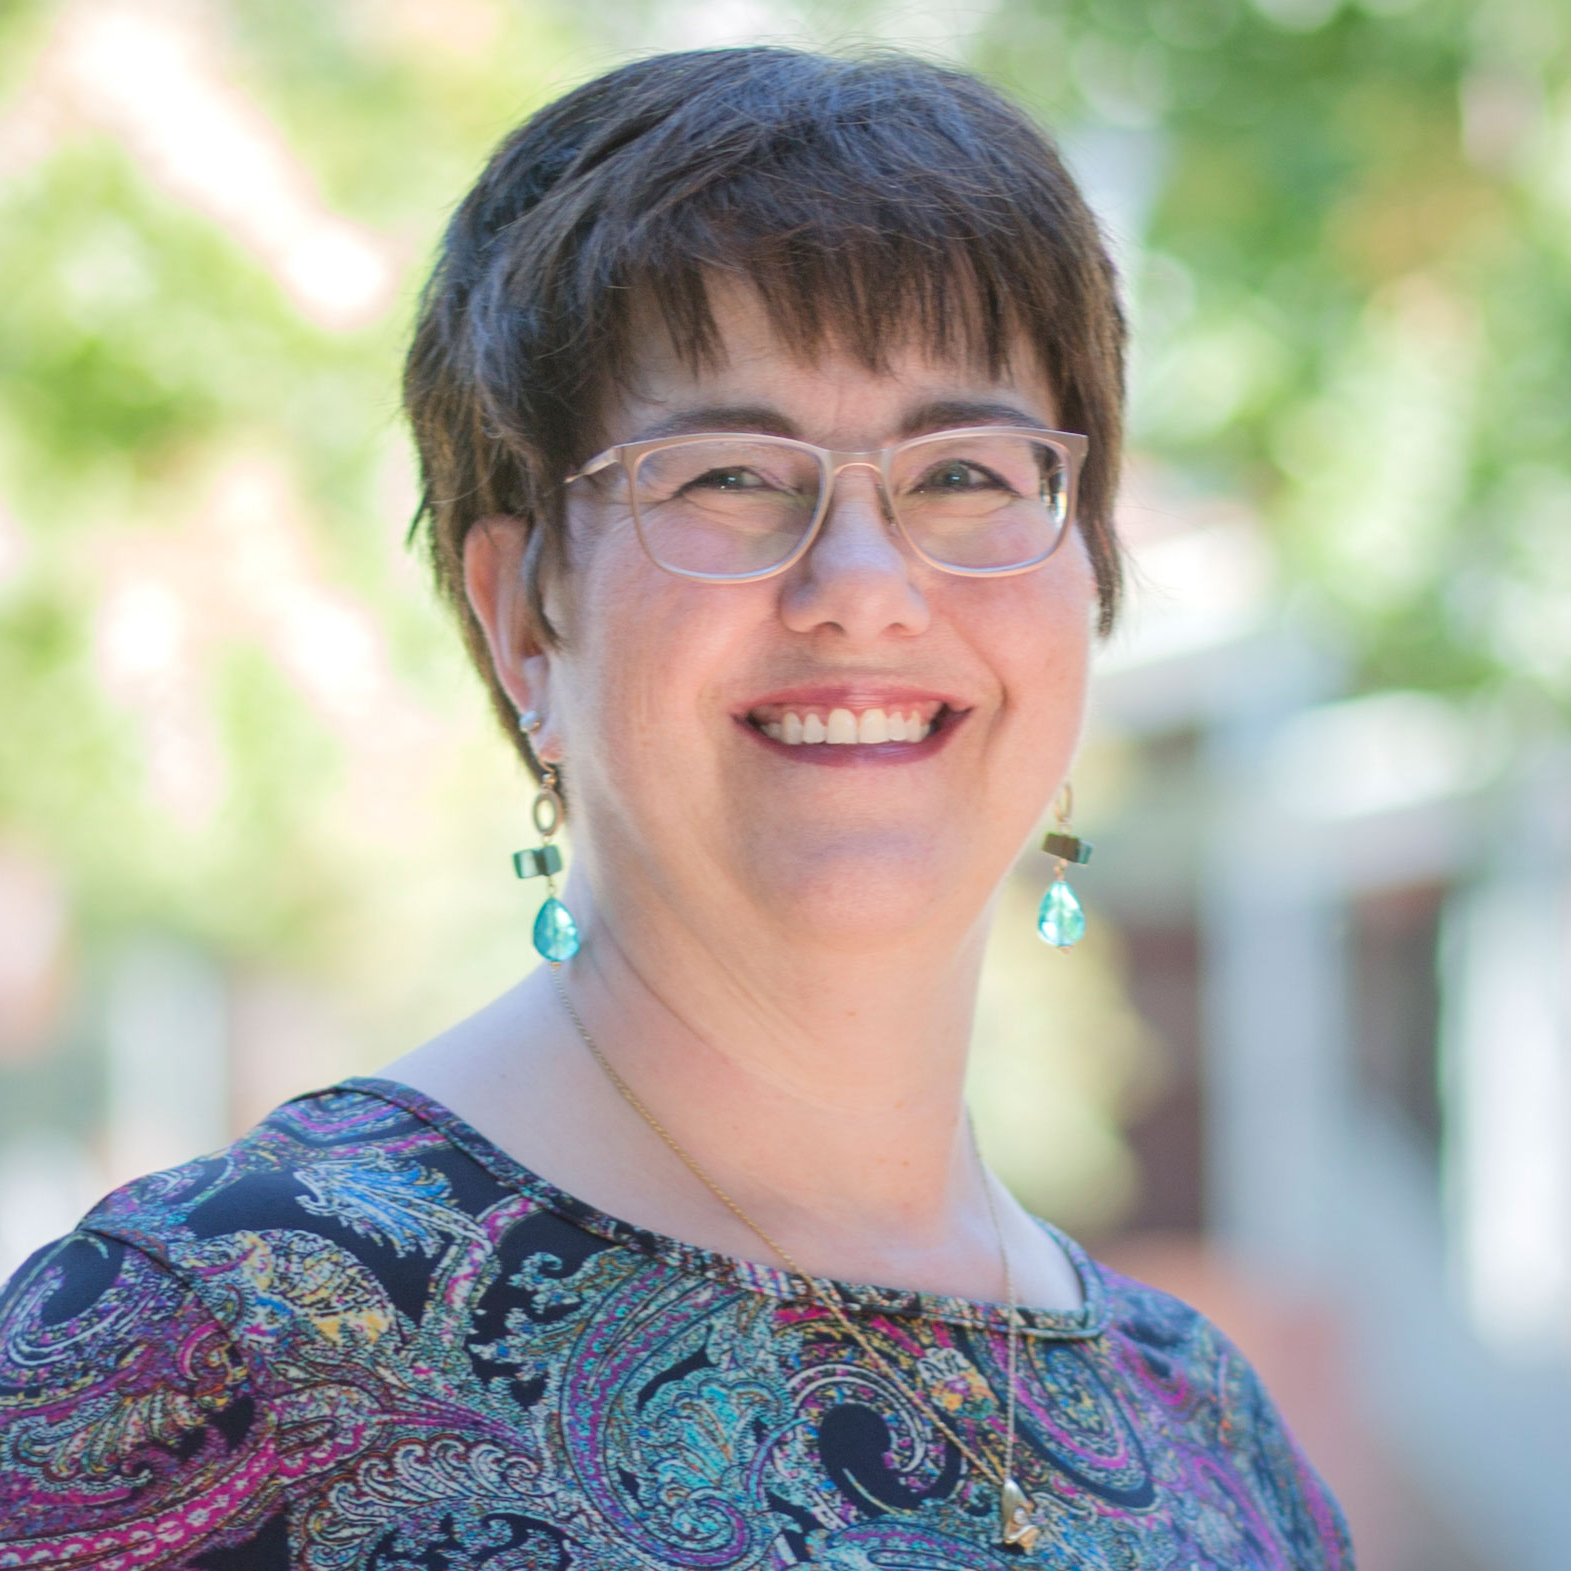 Co-Director of the OSU Center for Public Life and associate professor Tami Moore works to examine the various roles that universities – faculty, students, and universities as institutional actors – play in the communities they serve.